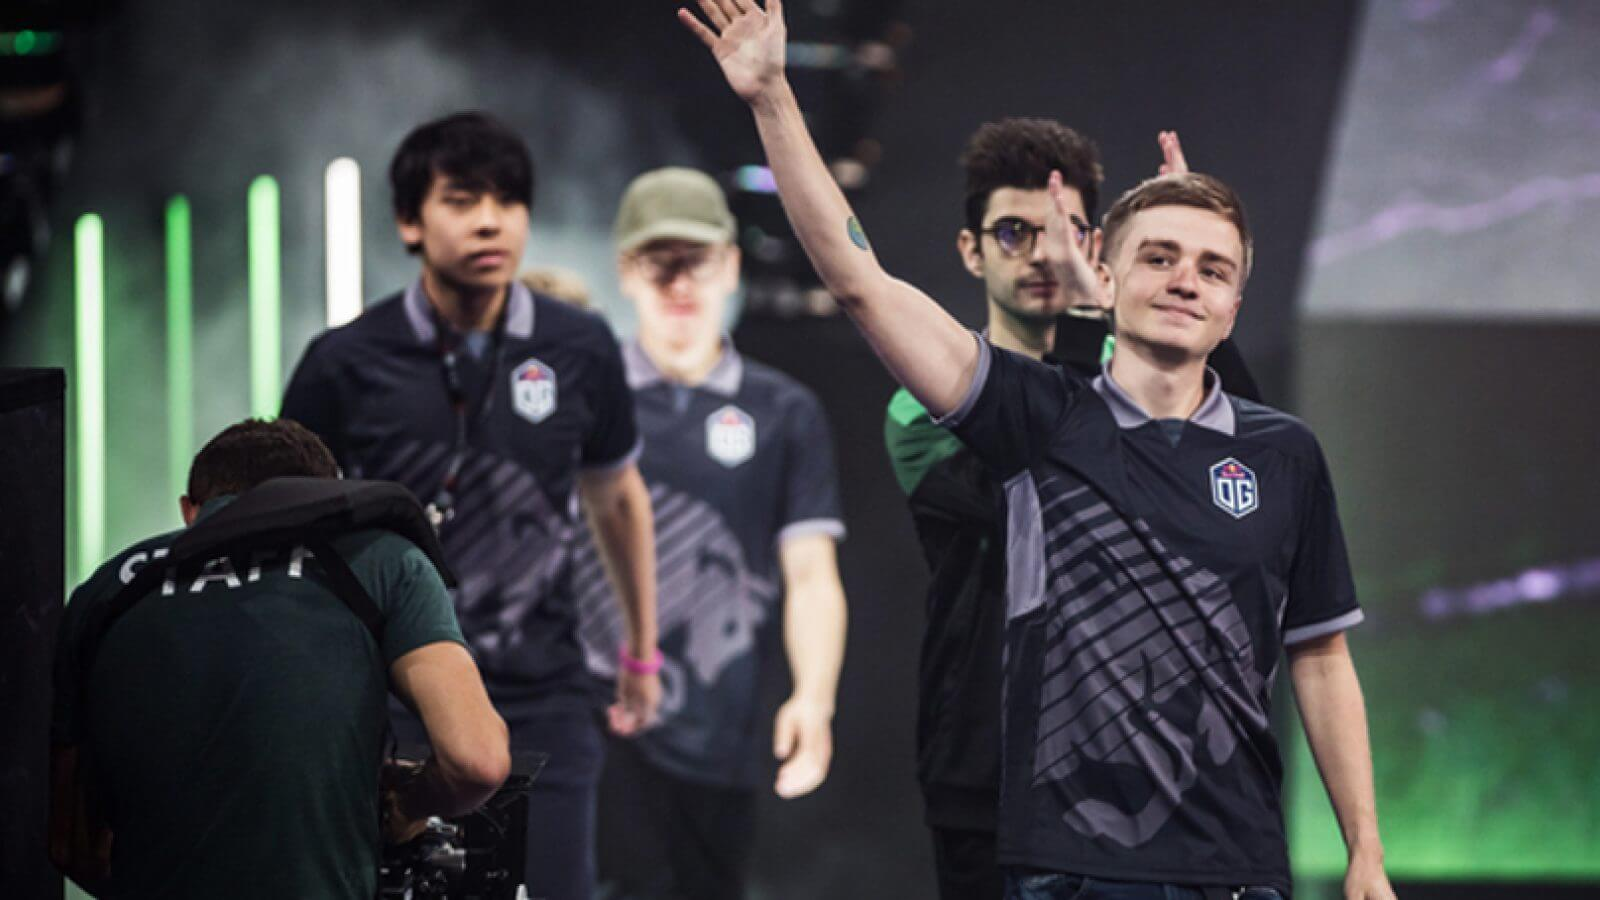 og-dota-2-the-international-2019-ti9-ti8-2018-champions-grand-finals-roster